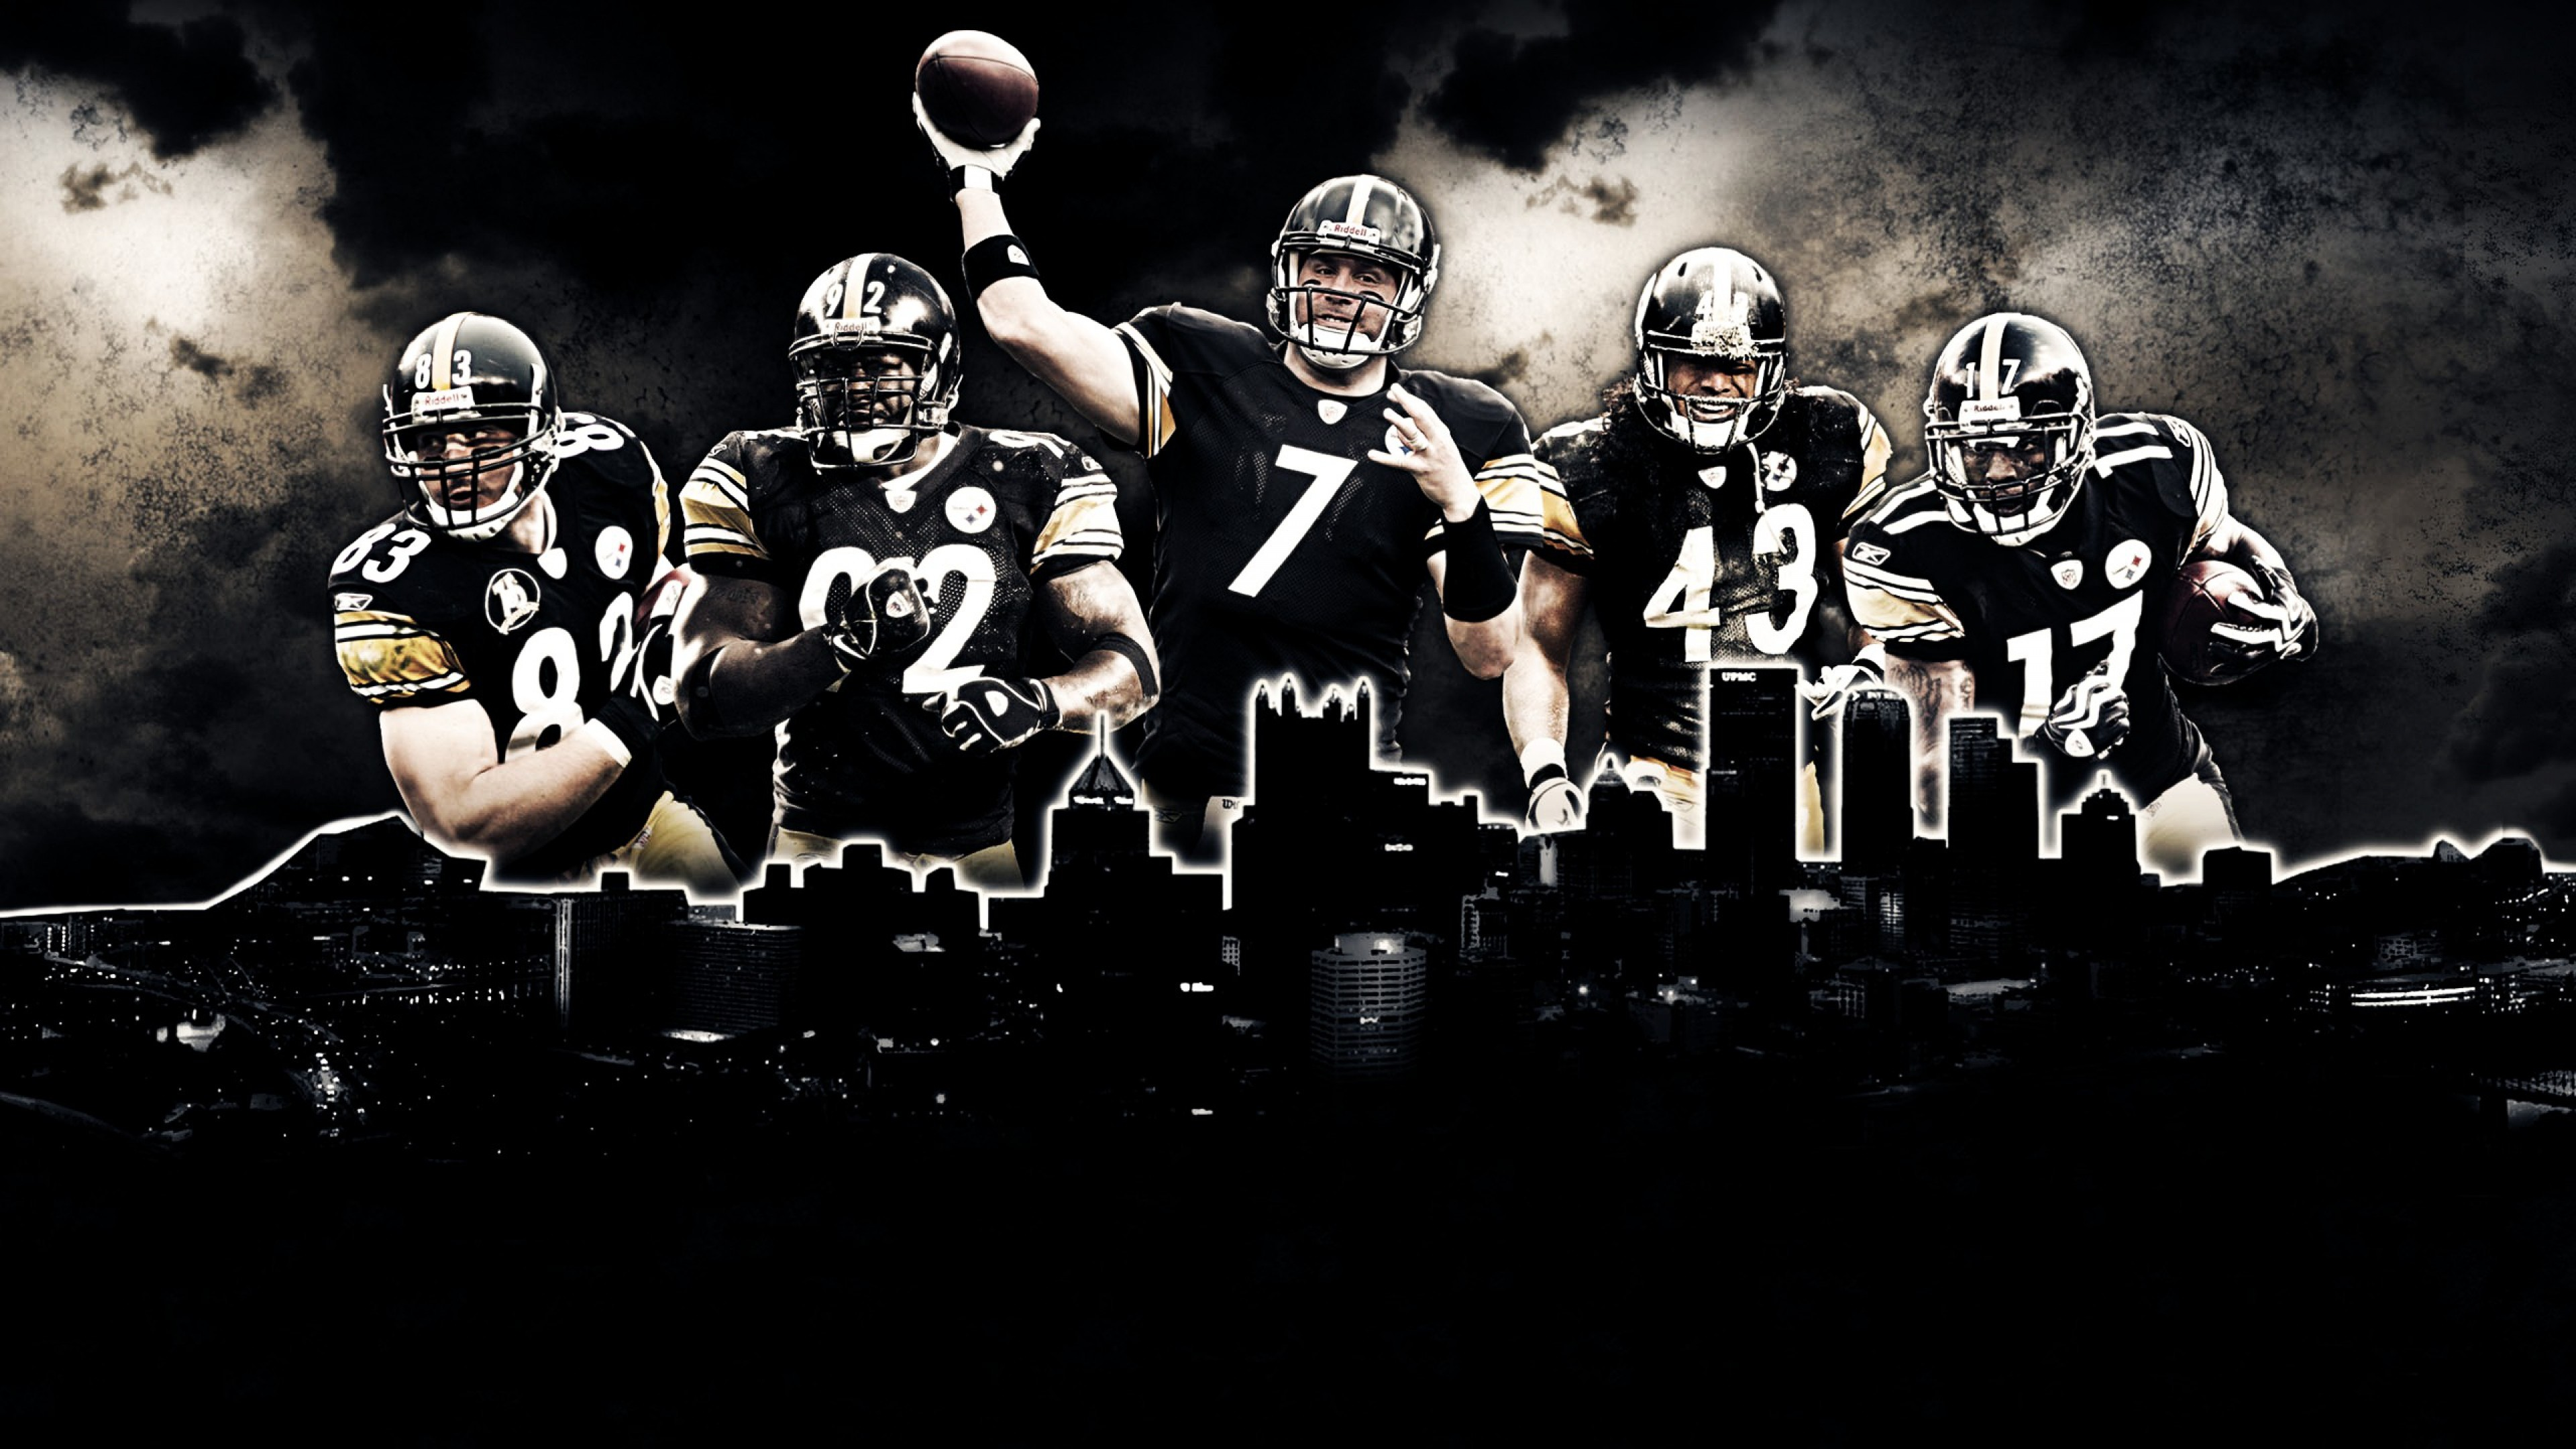 3840x2160 NFL-wallpapers-HD-team-pittsburgh-steelers